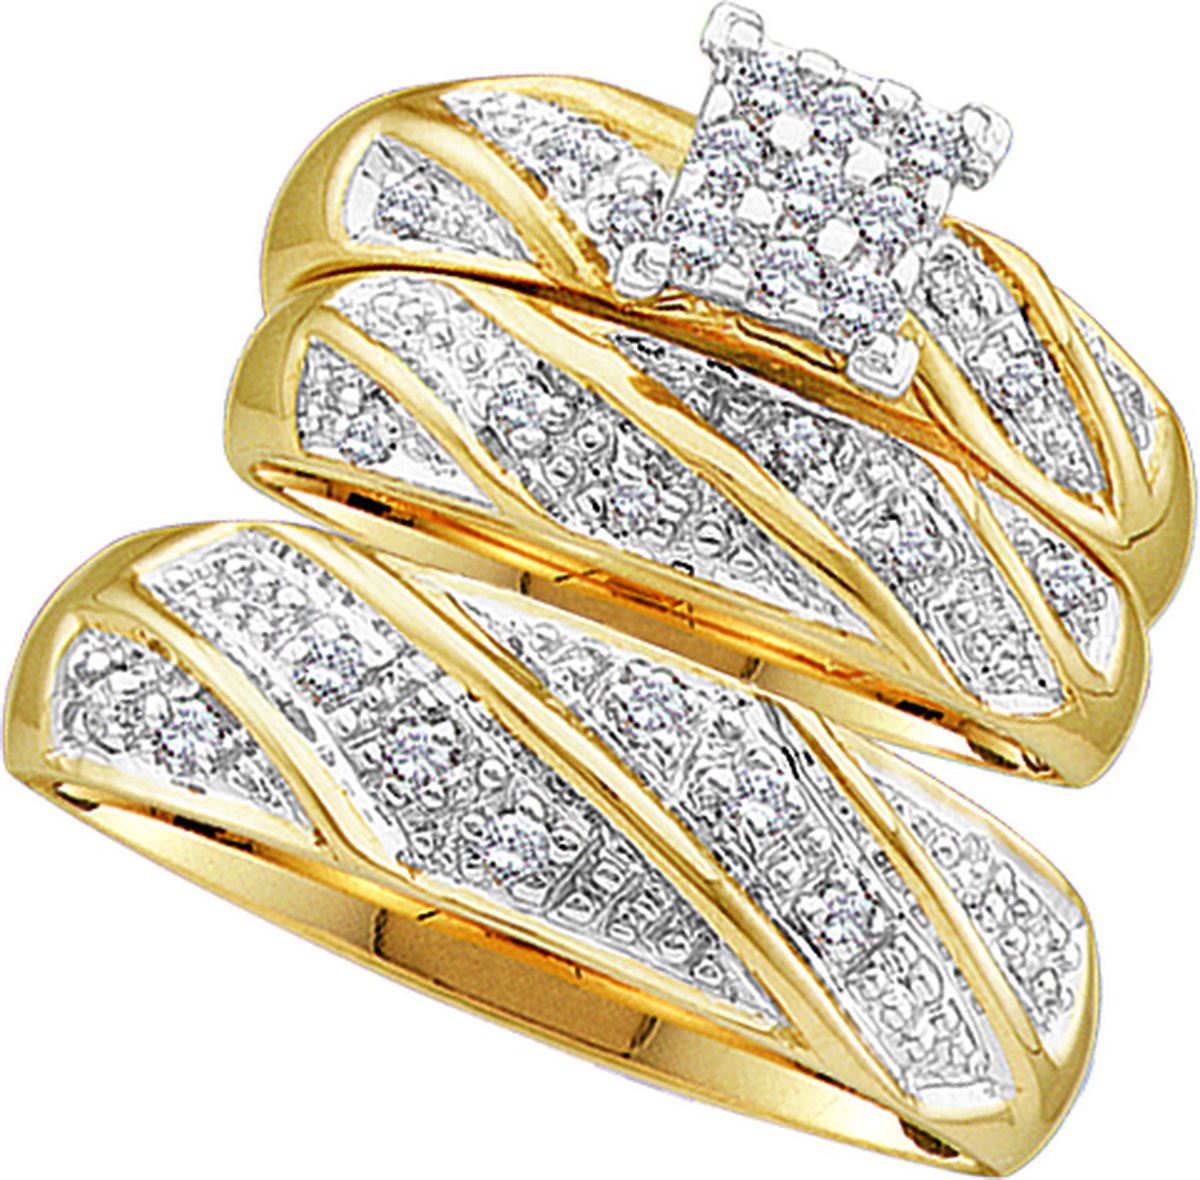 10k Yellow Gold Diamond Cluster Womens Mens Matching Trio Wedding Bridal Ring Set (.25 cttw.) size- 8.5 by